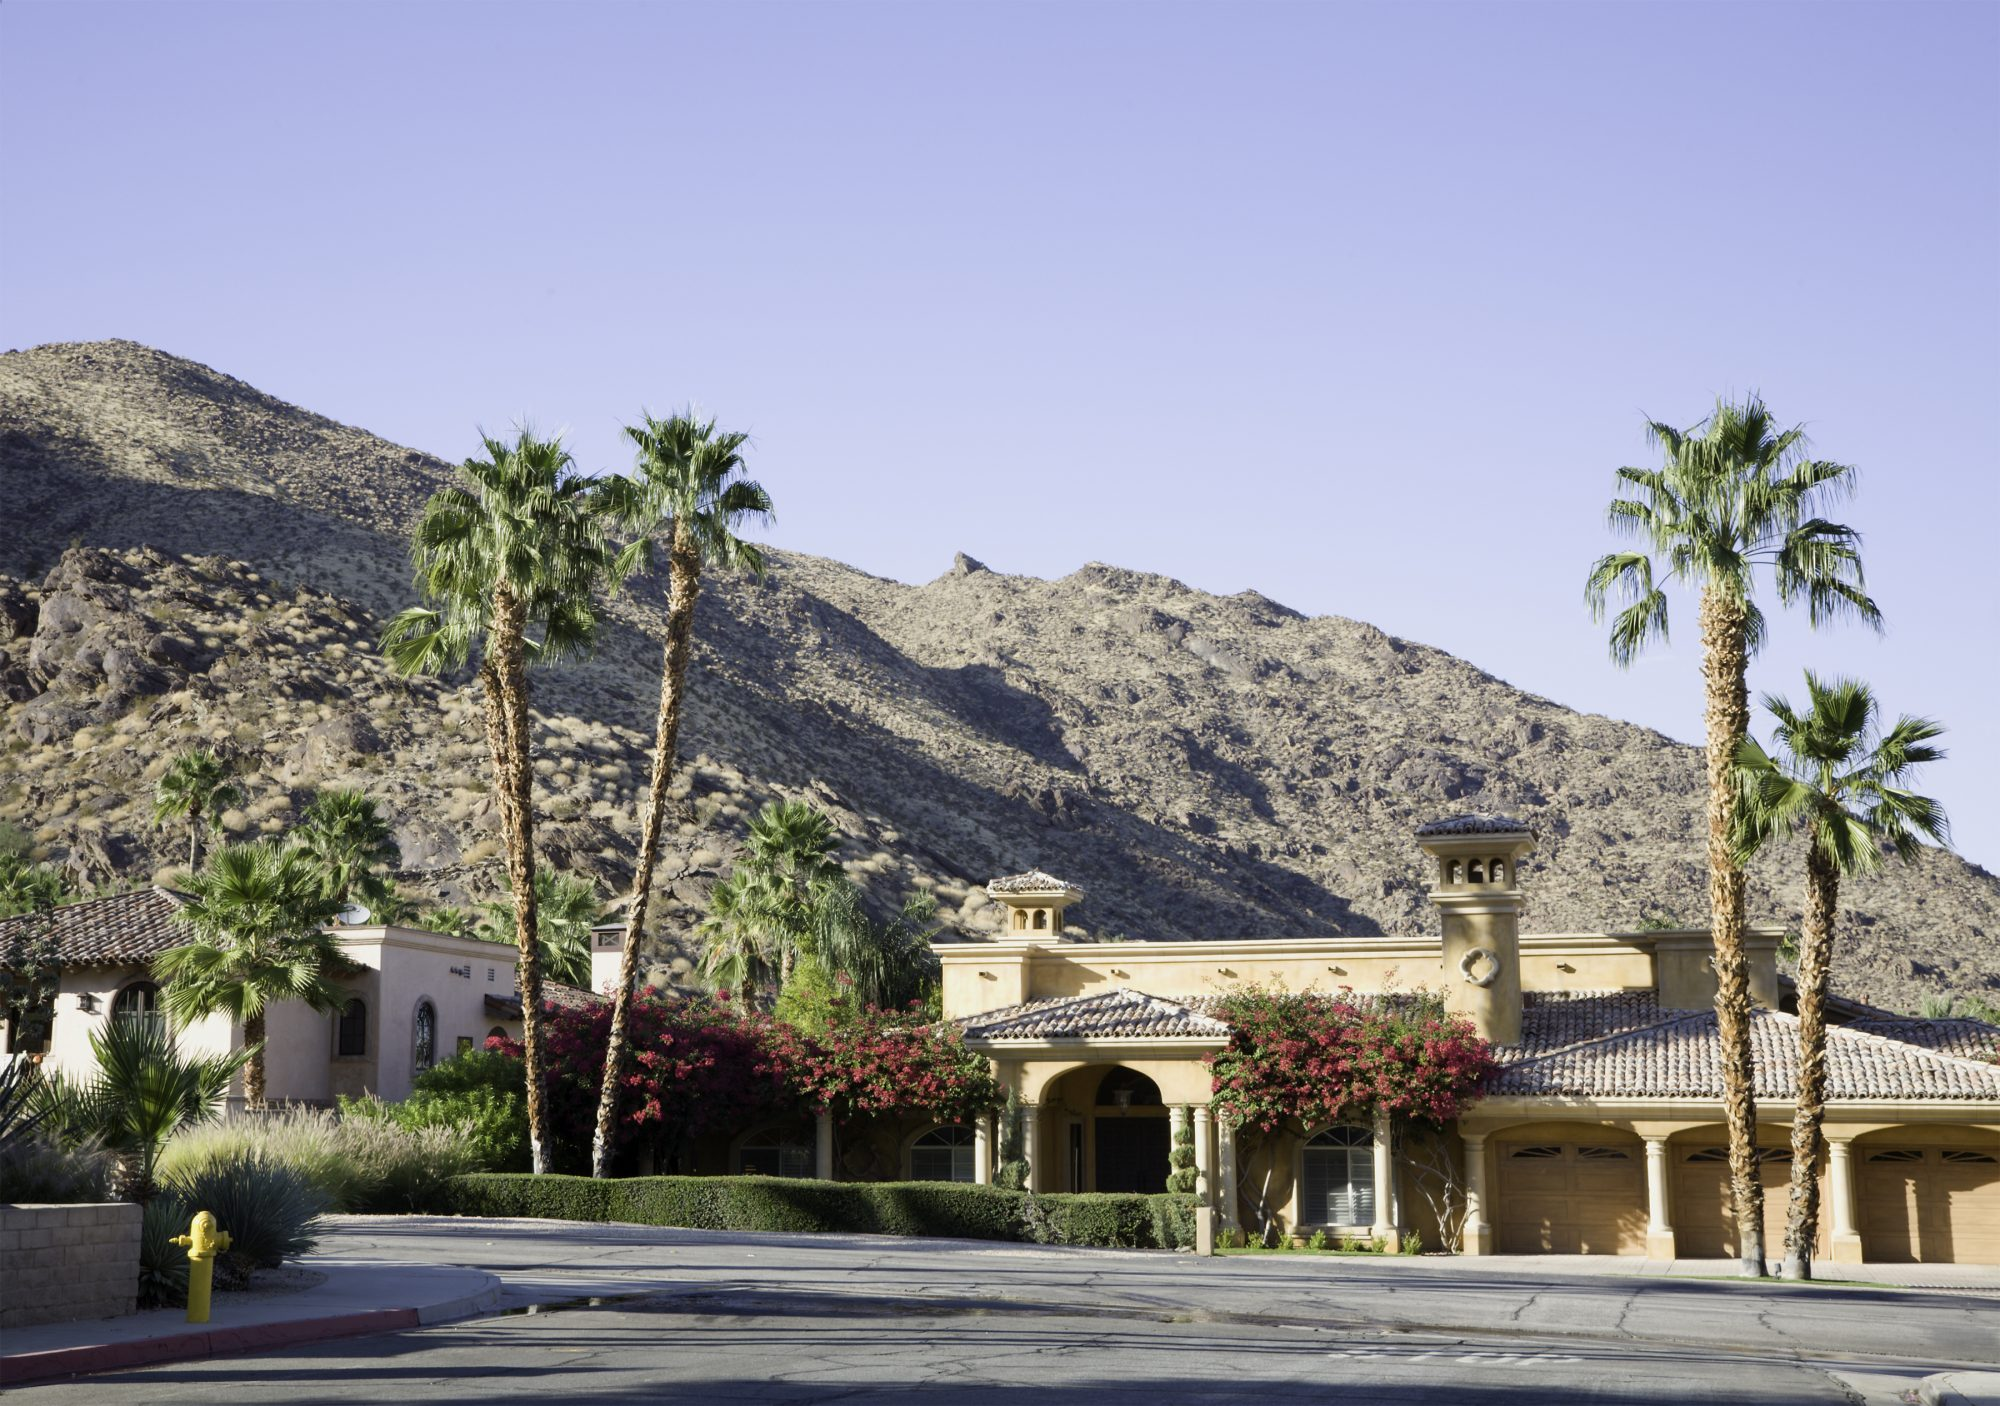 Spanish Architecture located against the rocky mountain terrain of the desert in Palm Springs